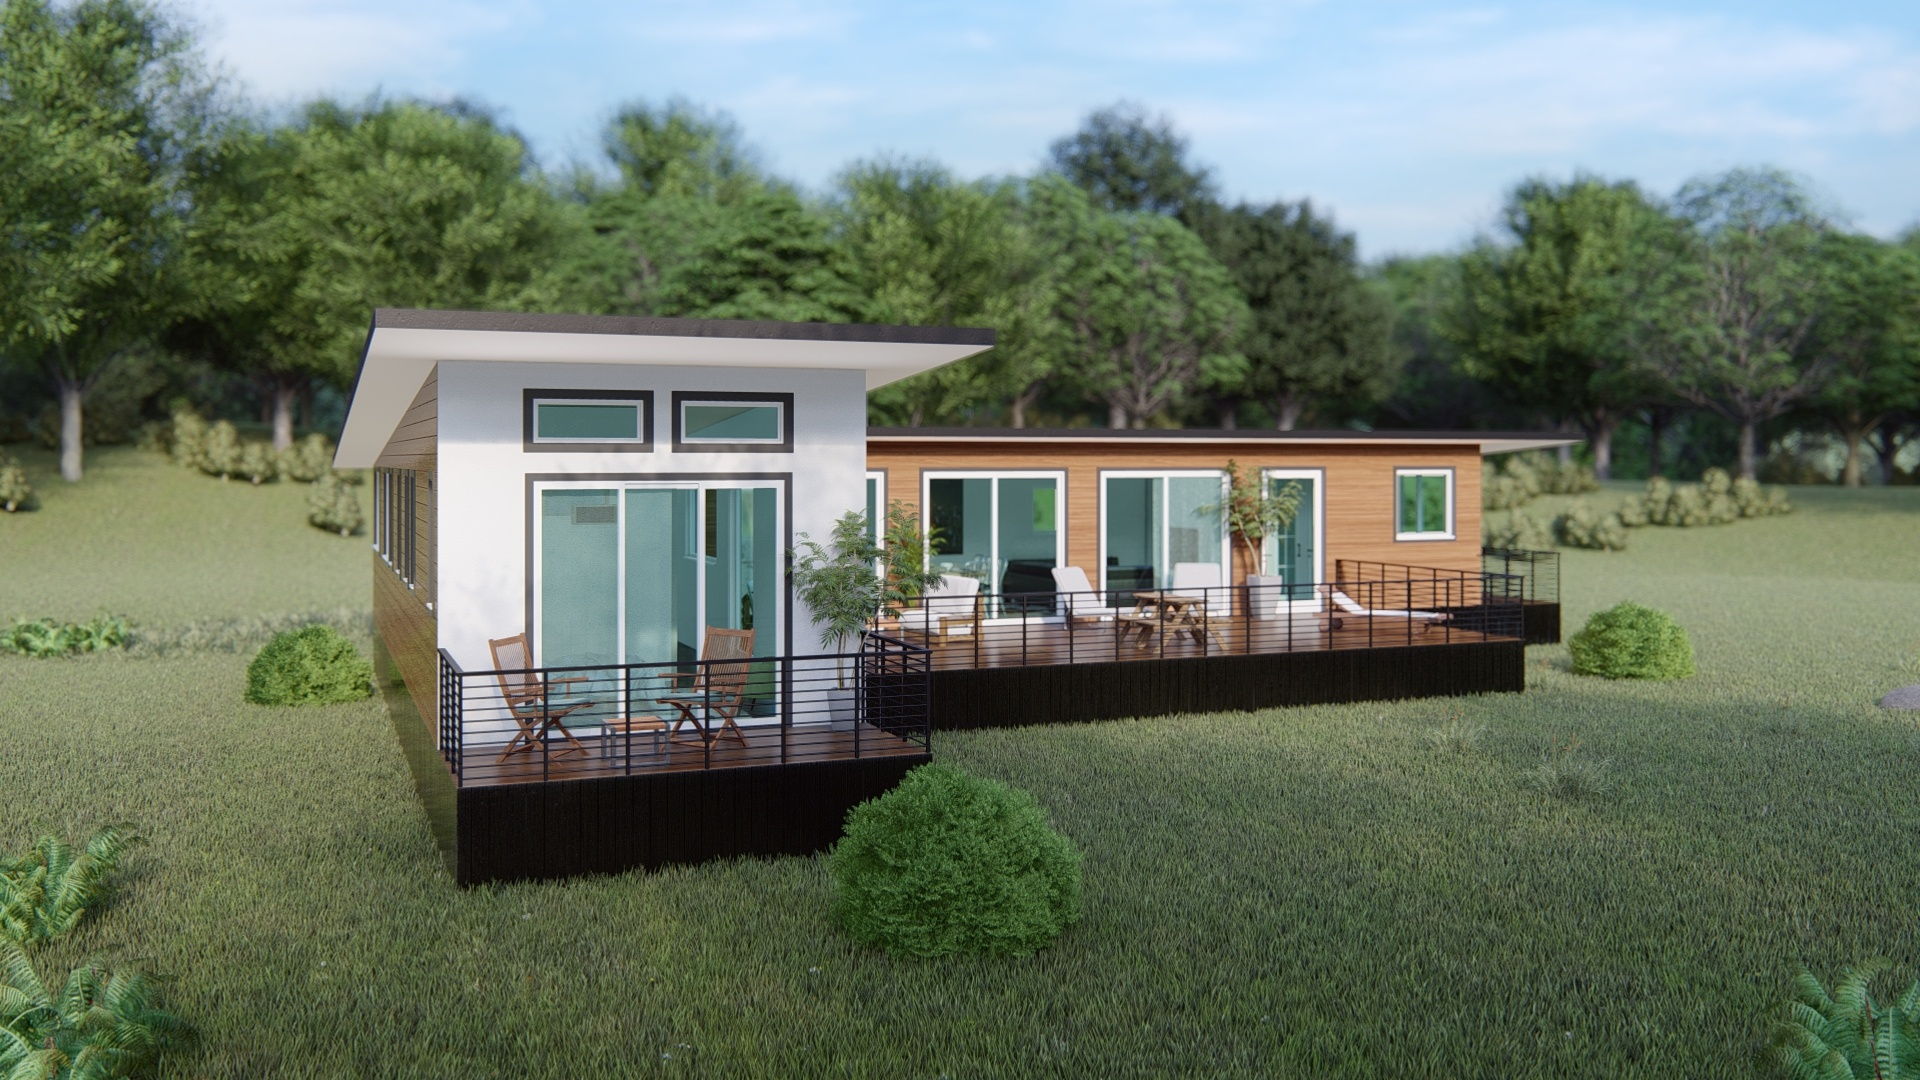 A computer-rendered image of a modular home situated in a rural, natural environment, with a deck, steps, angular roof and large glass windows visible.